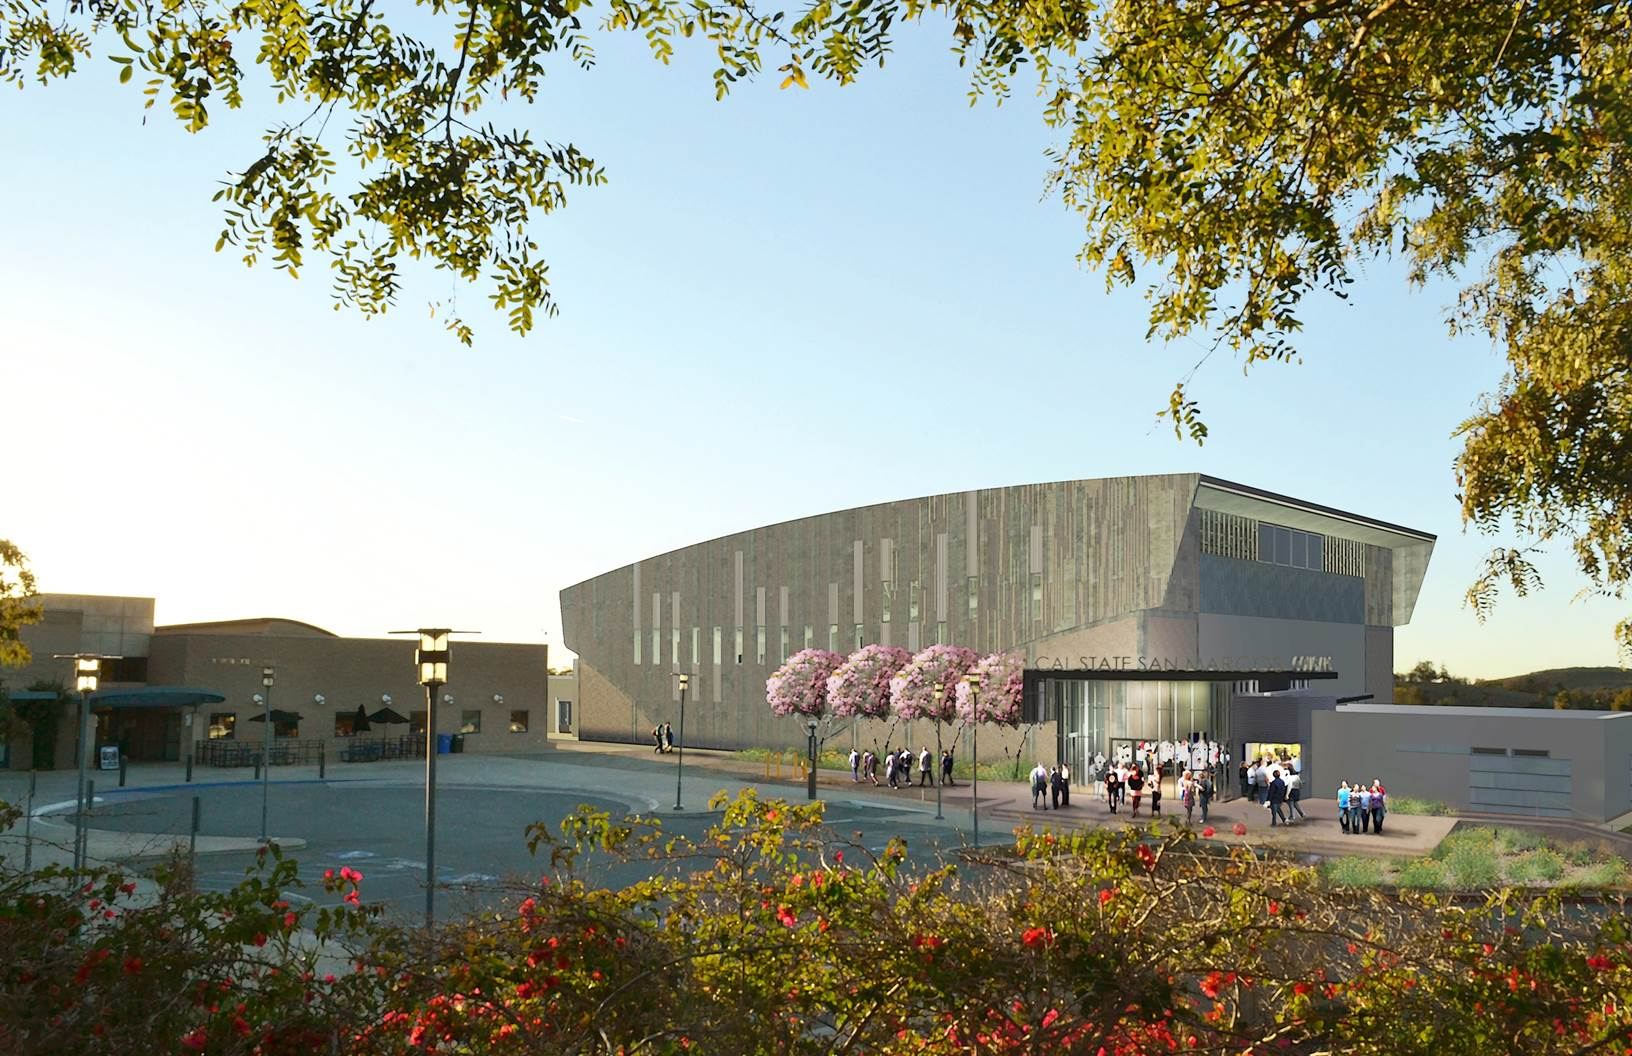 CSUSM's new multipurpose arena will open in fall 2016